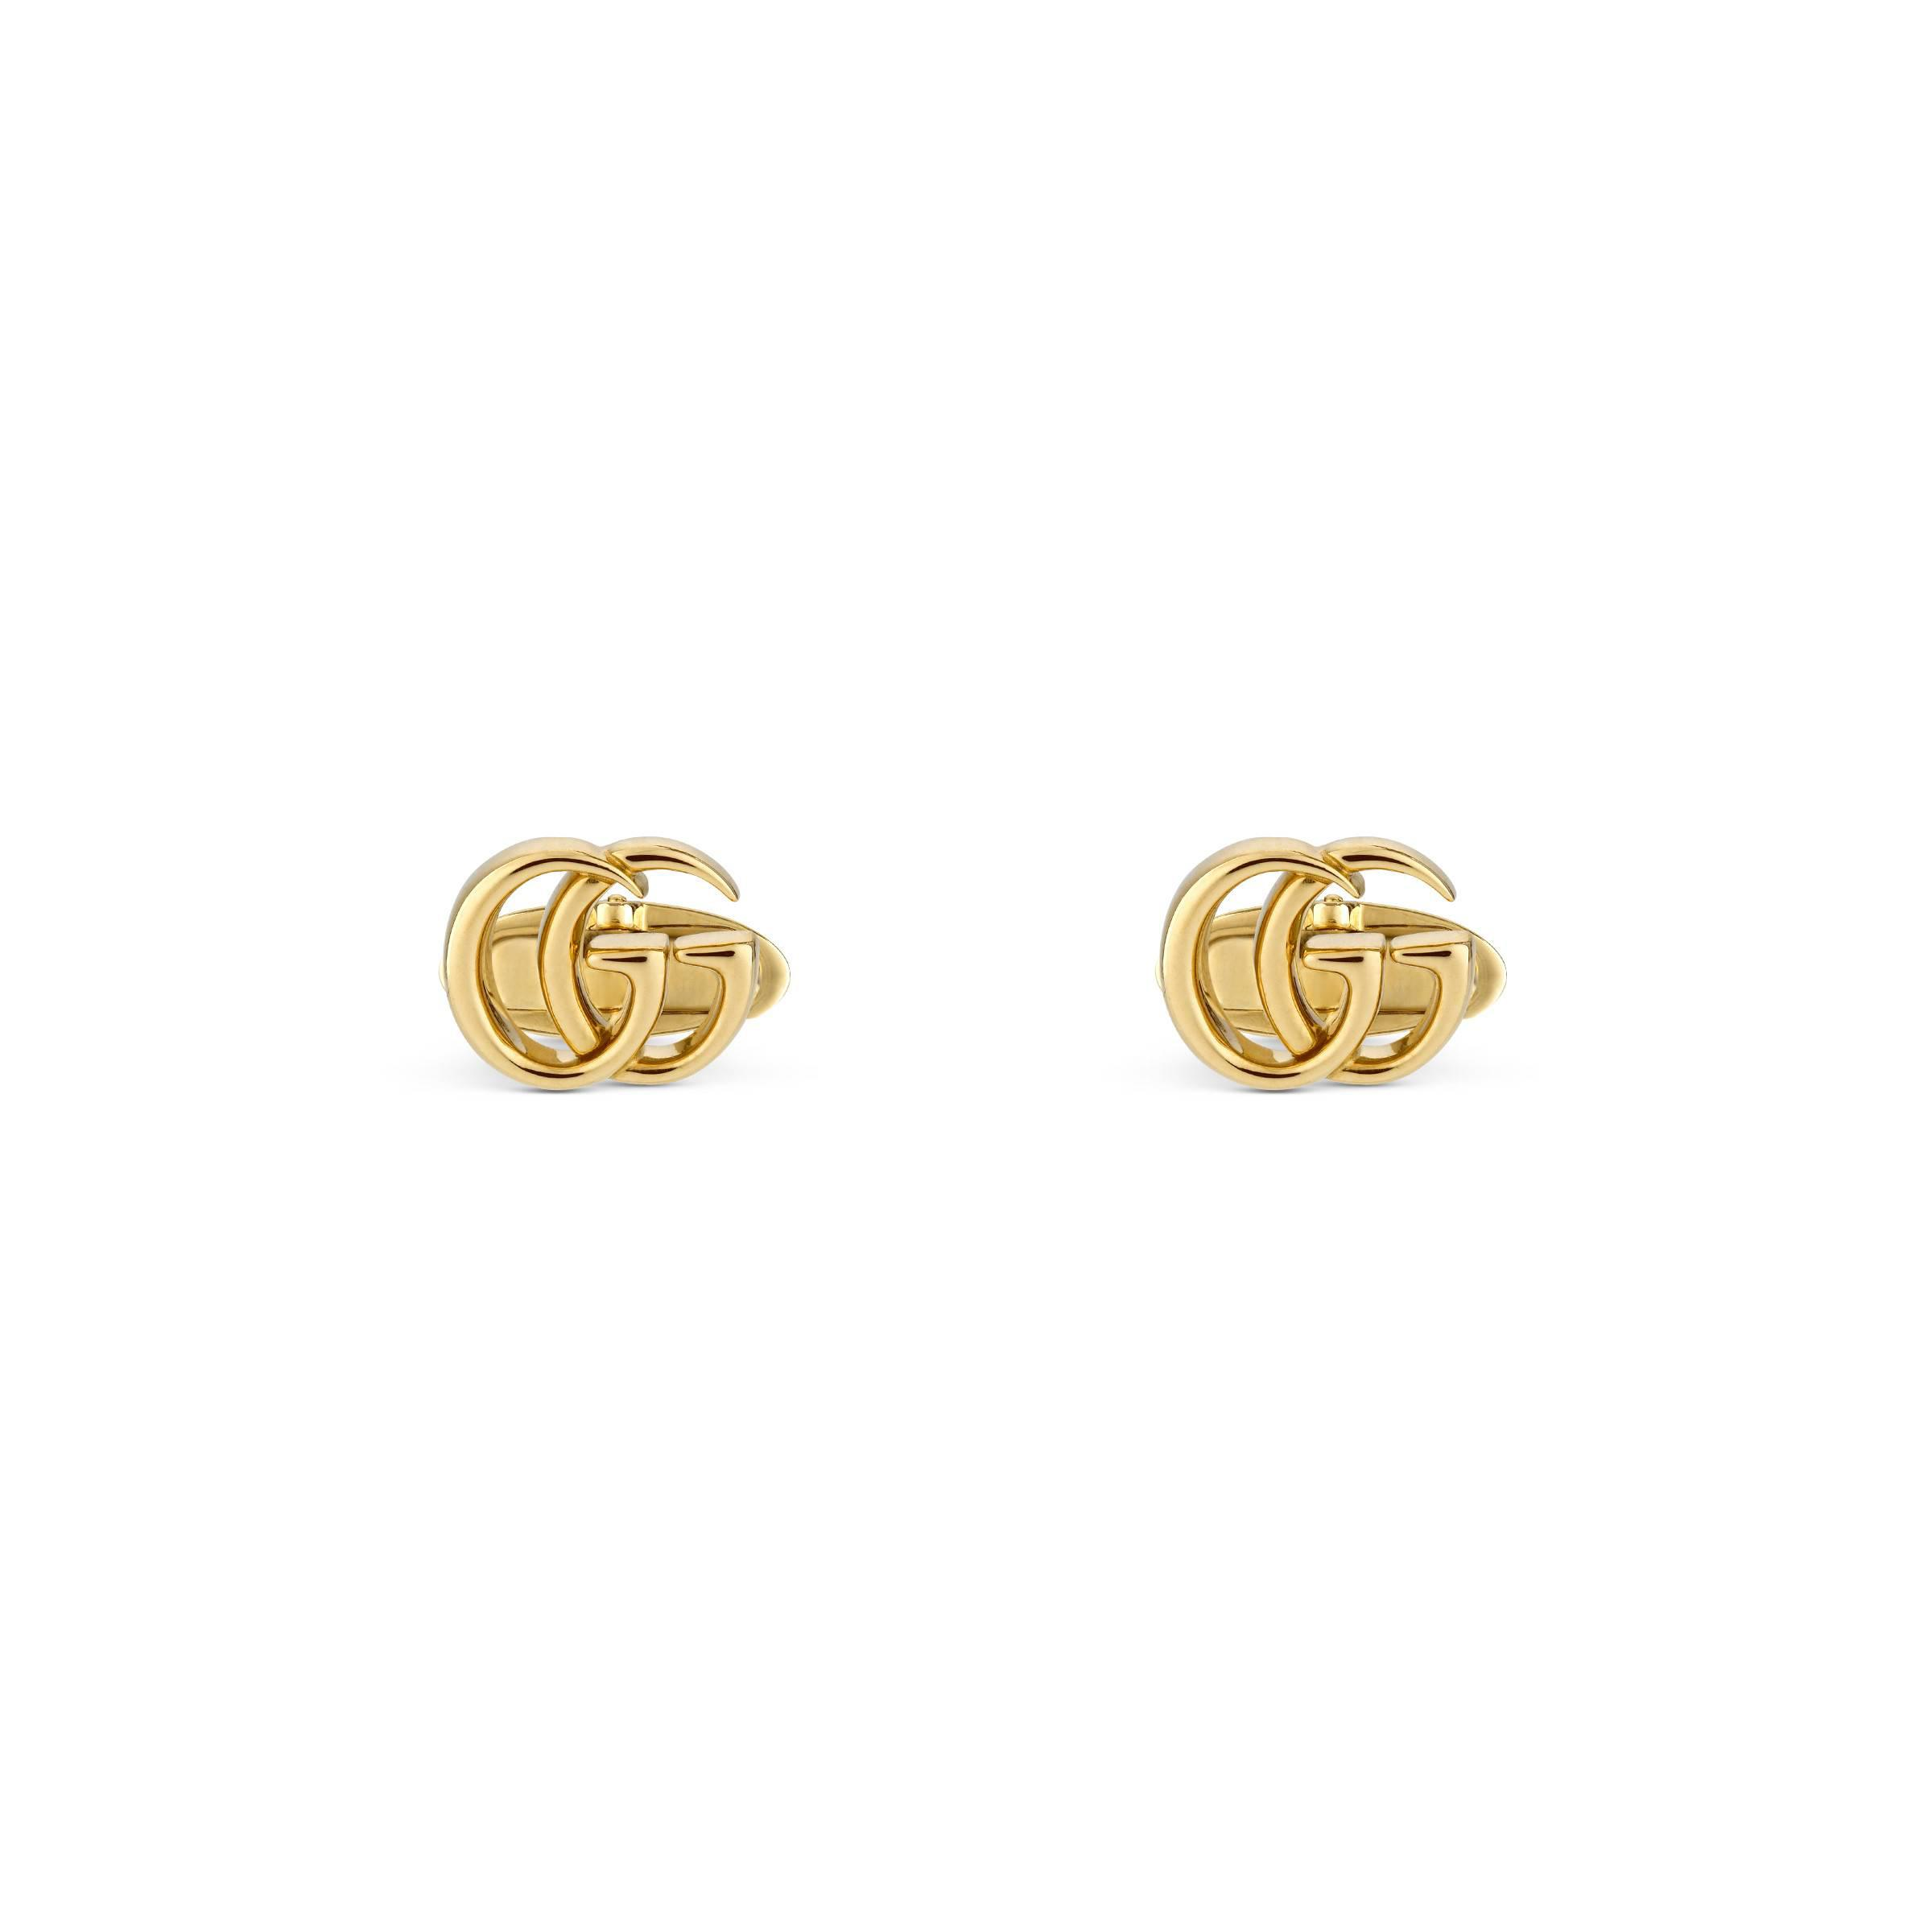 35cdd1ada2a62 Gucci GG Running Yellow Gold Cufflinks in Metallic for Men - Lyst